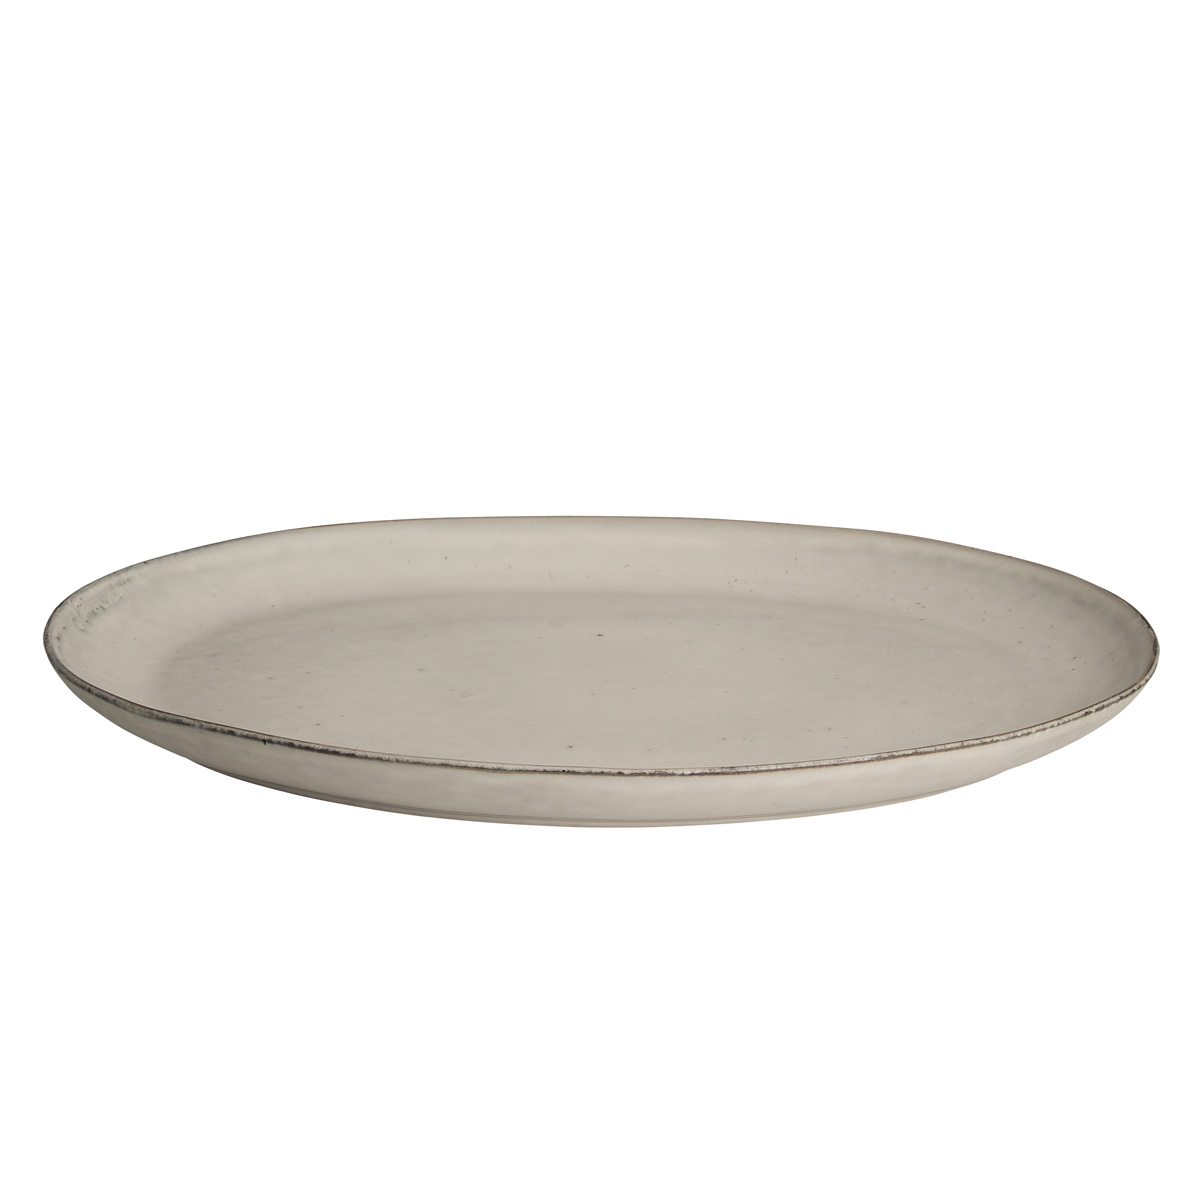 large-nordic-sand-broste-oval-plate